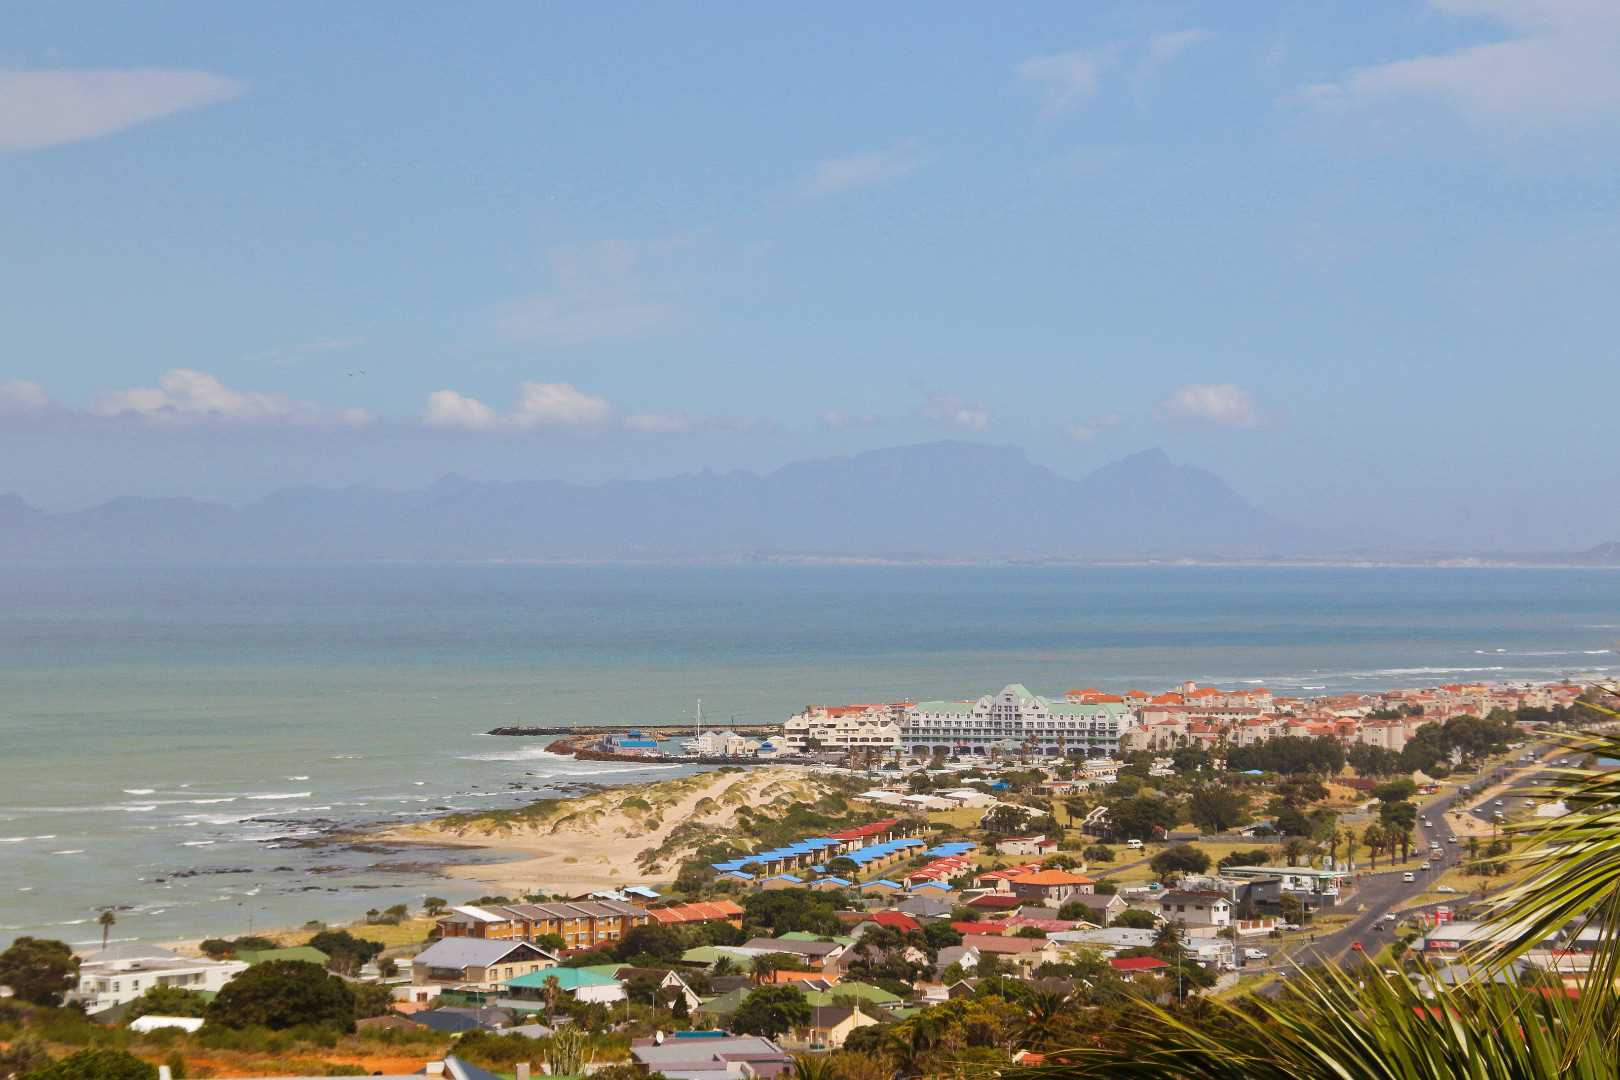 Ocean view that includes Harbour Island and Table Mountain, Cape Town